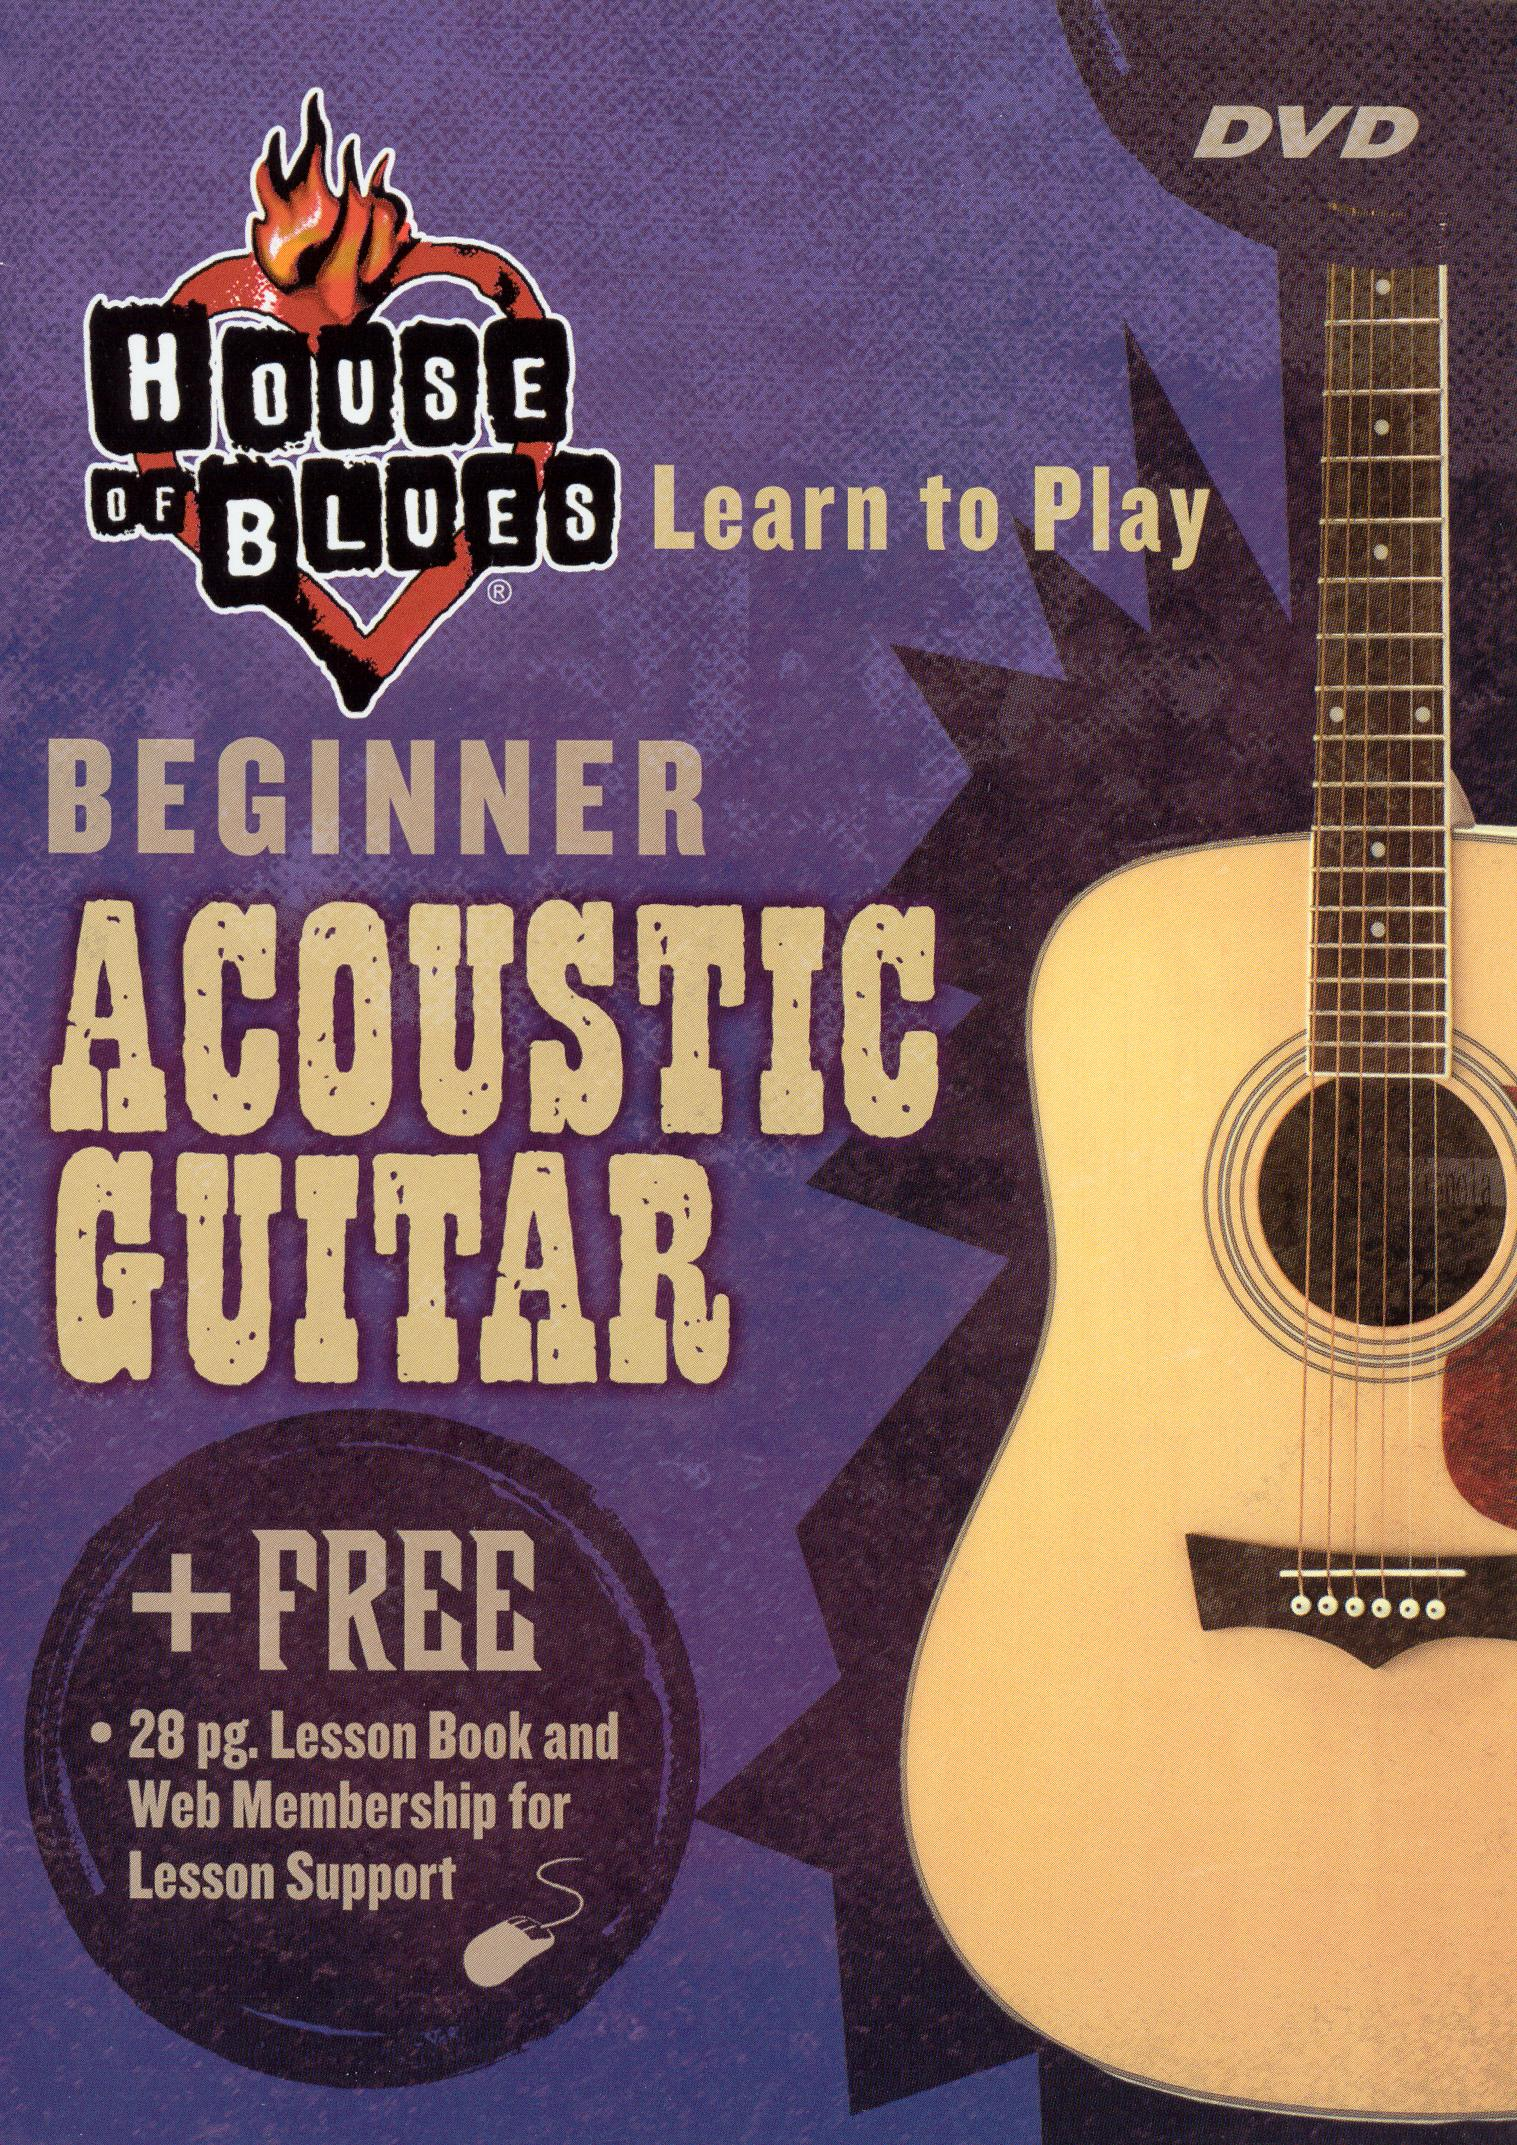 House of Blues Presents Learn To Play Acoustic Guitar